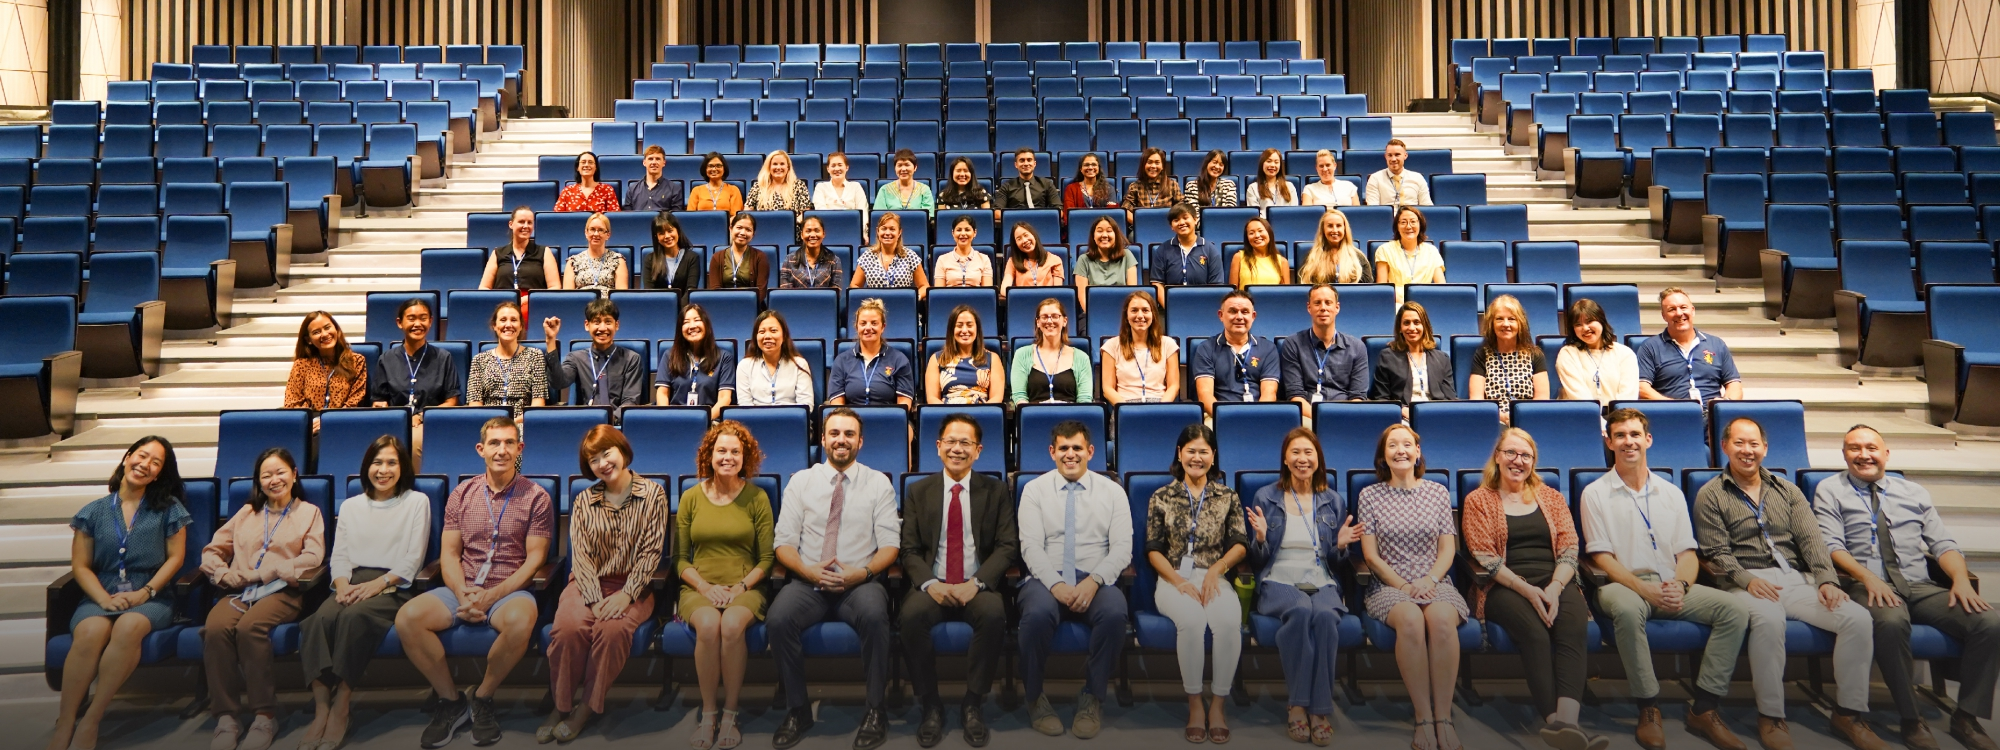 Countdown to the first term and first year at King's Bangkok